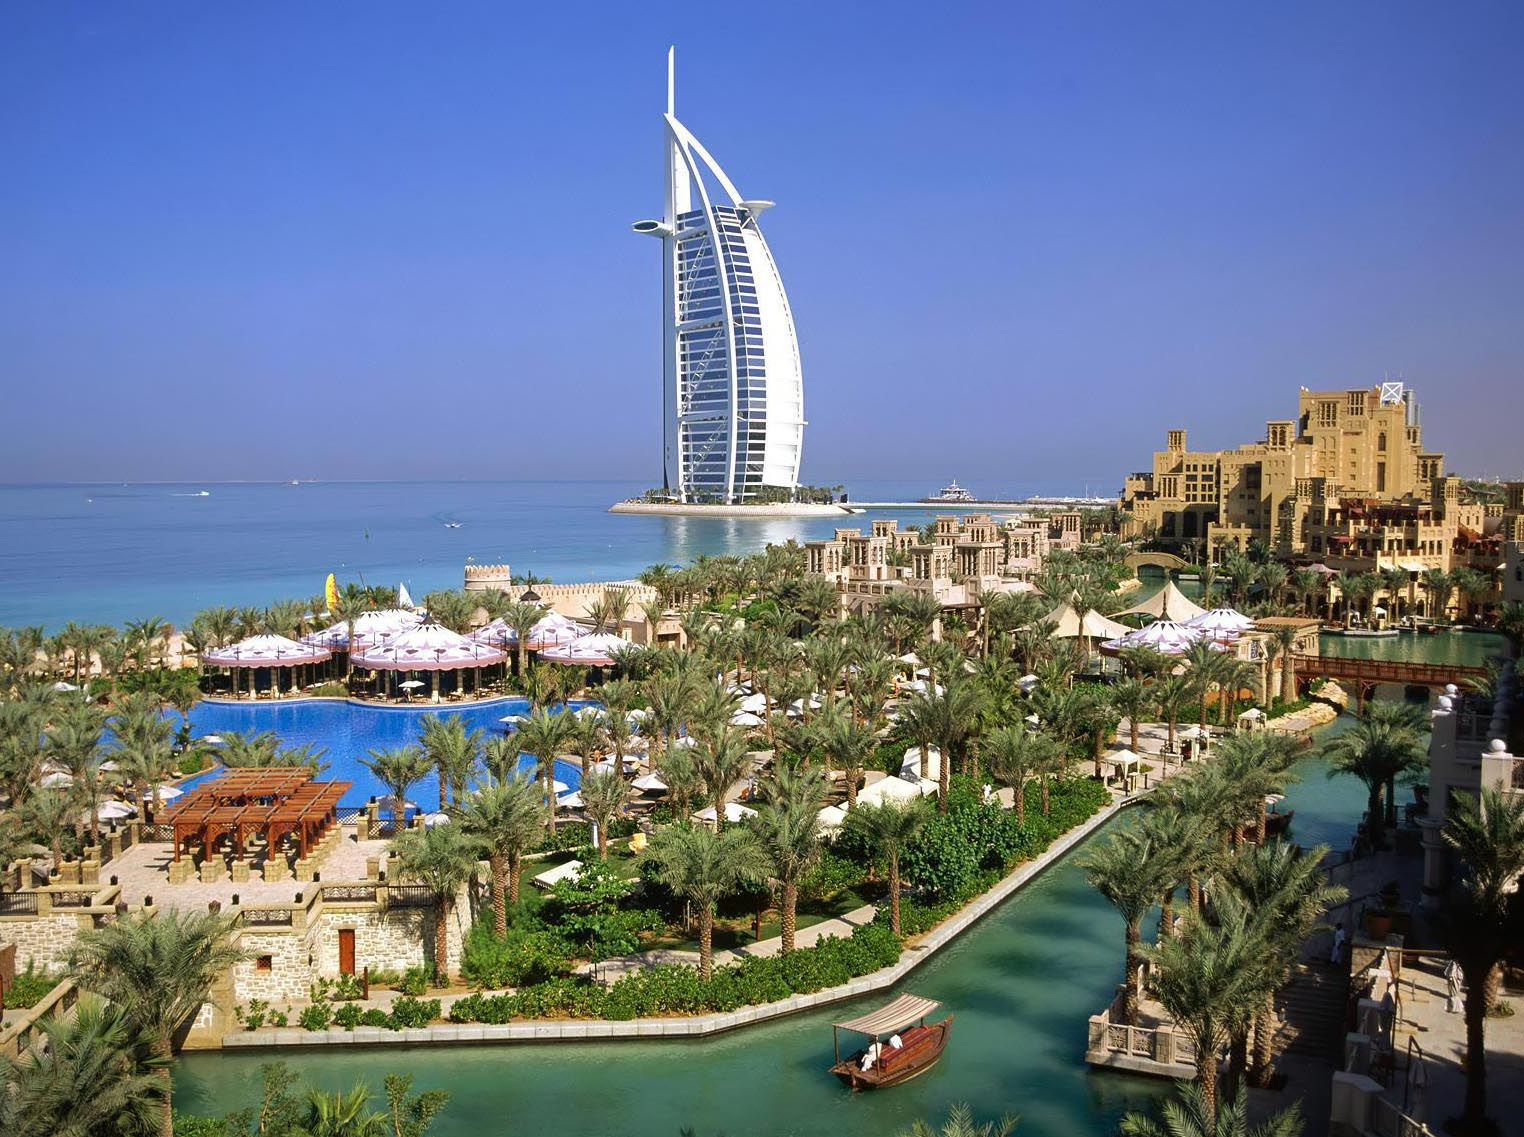 Accomadation in the world burj al arab hotel in dubai for Hotel burj al arab